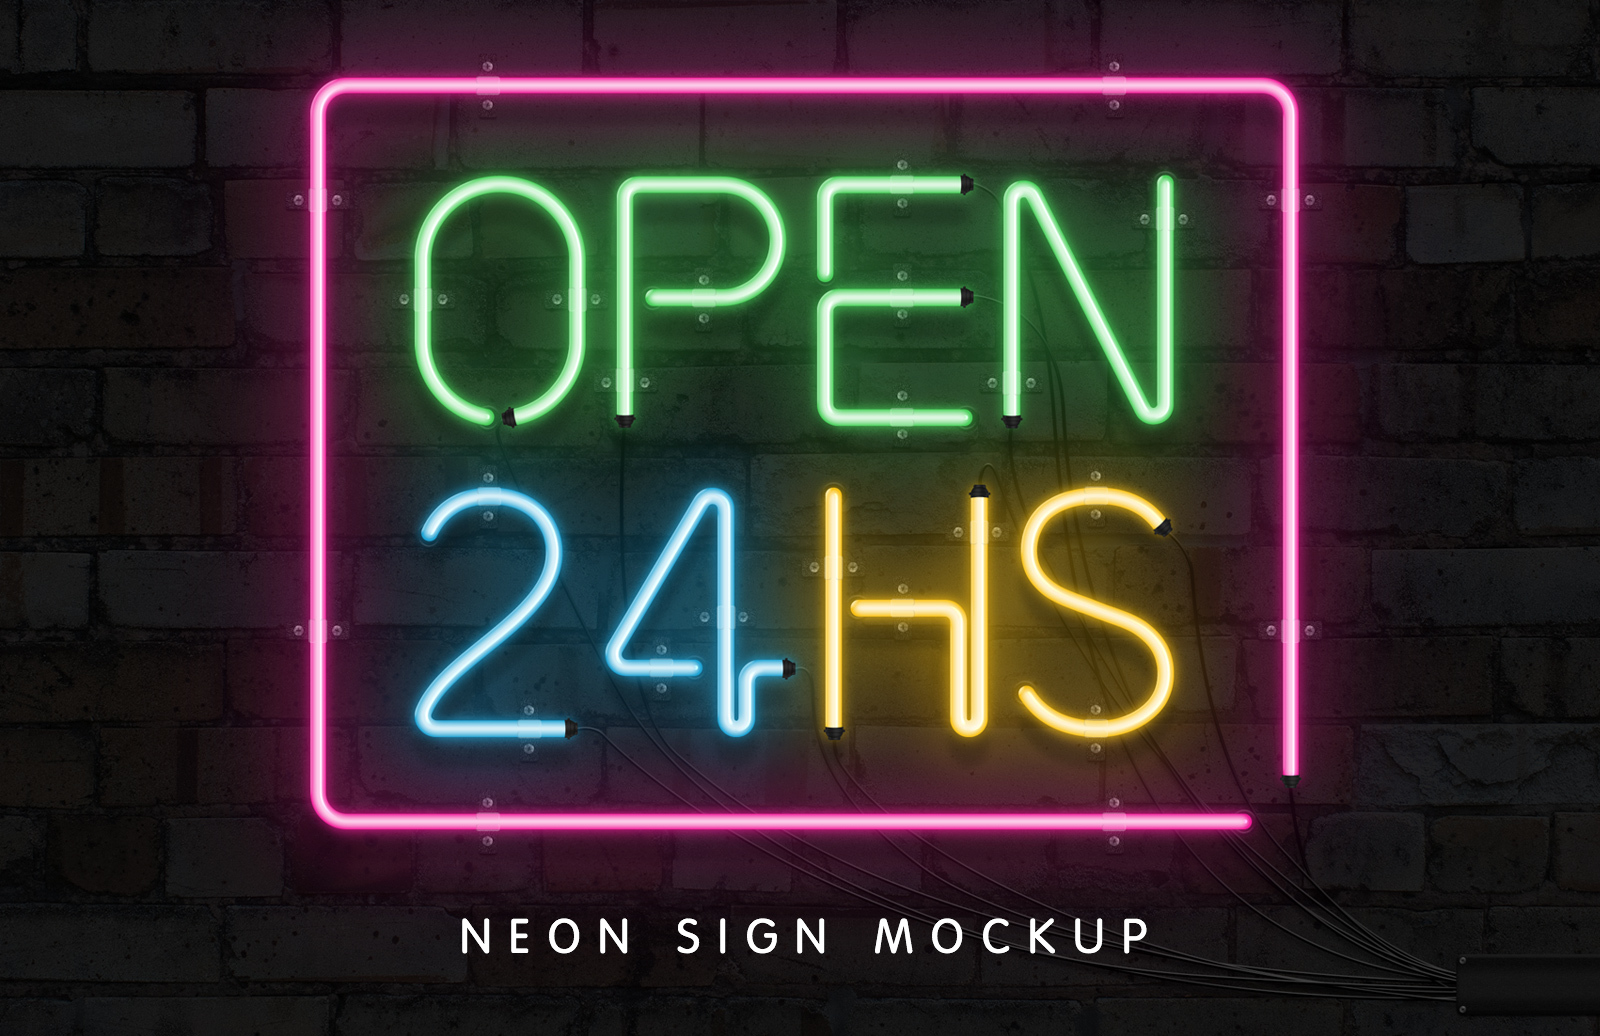 Neon font effect collection medialoot neon sign mockup thecheapjerseys